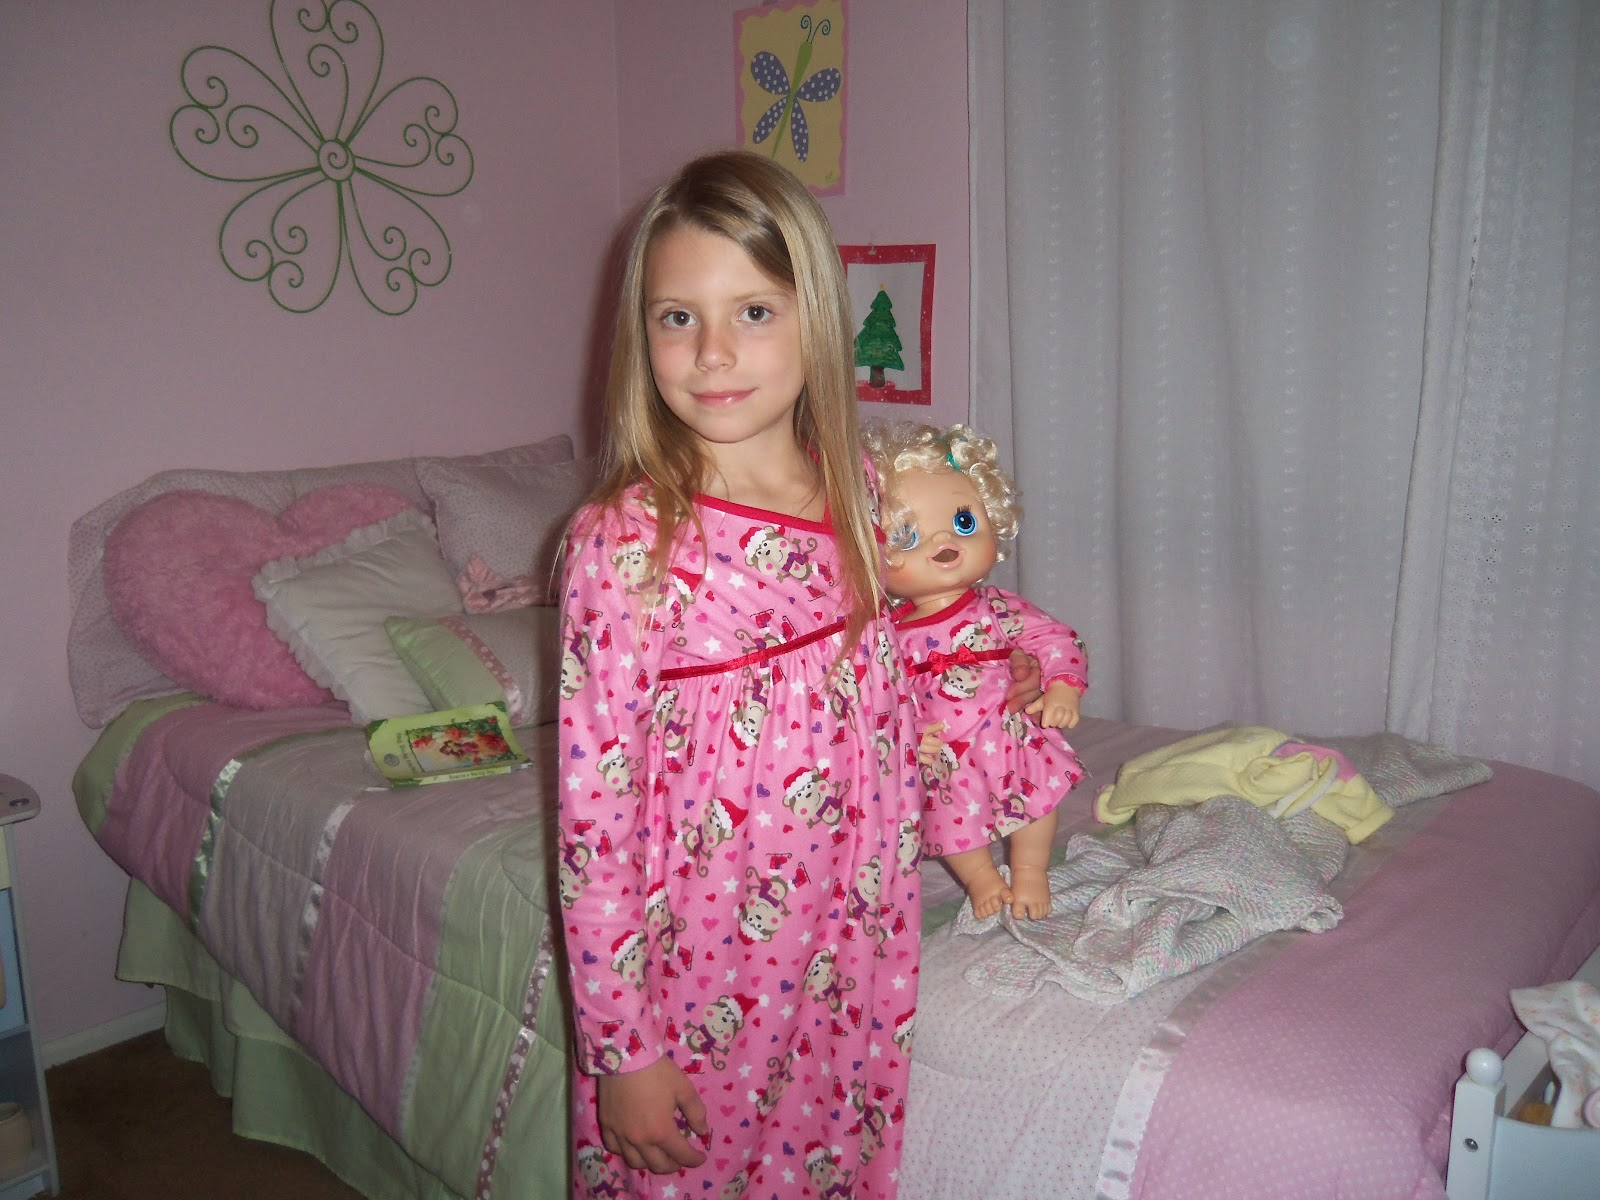 Little Girls In Bed Wearing Nightgown